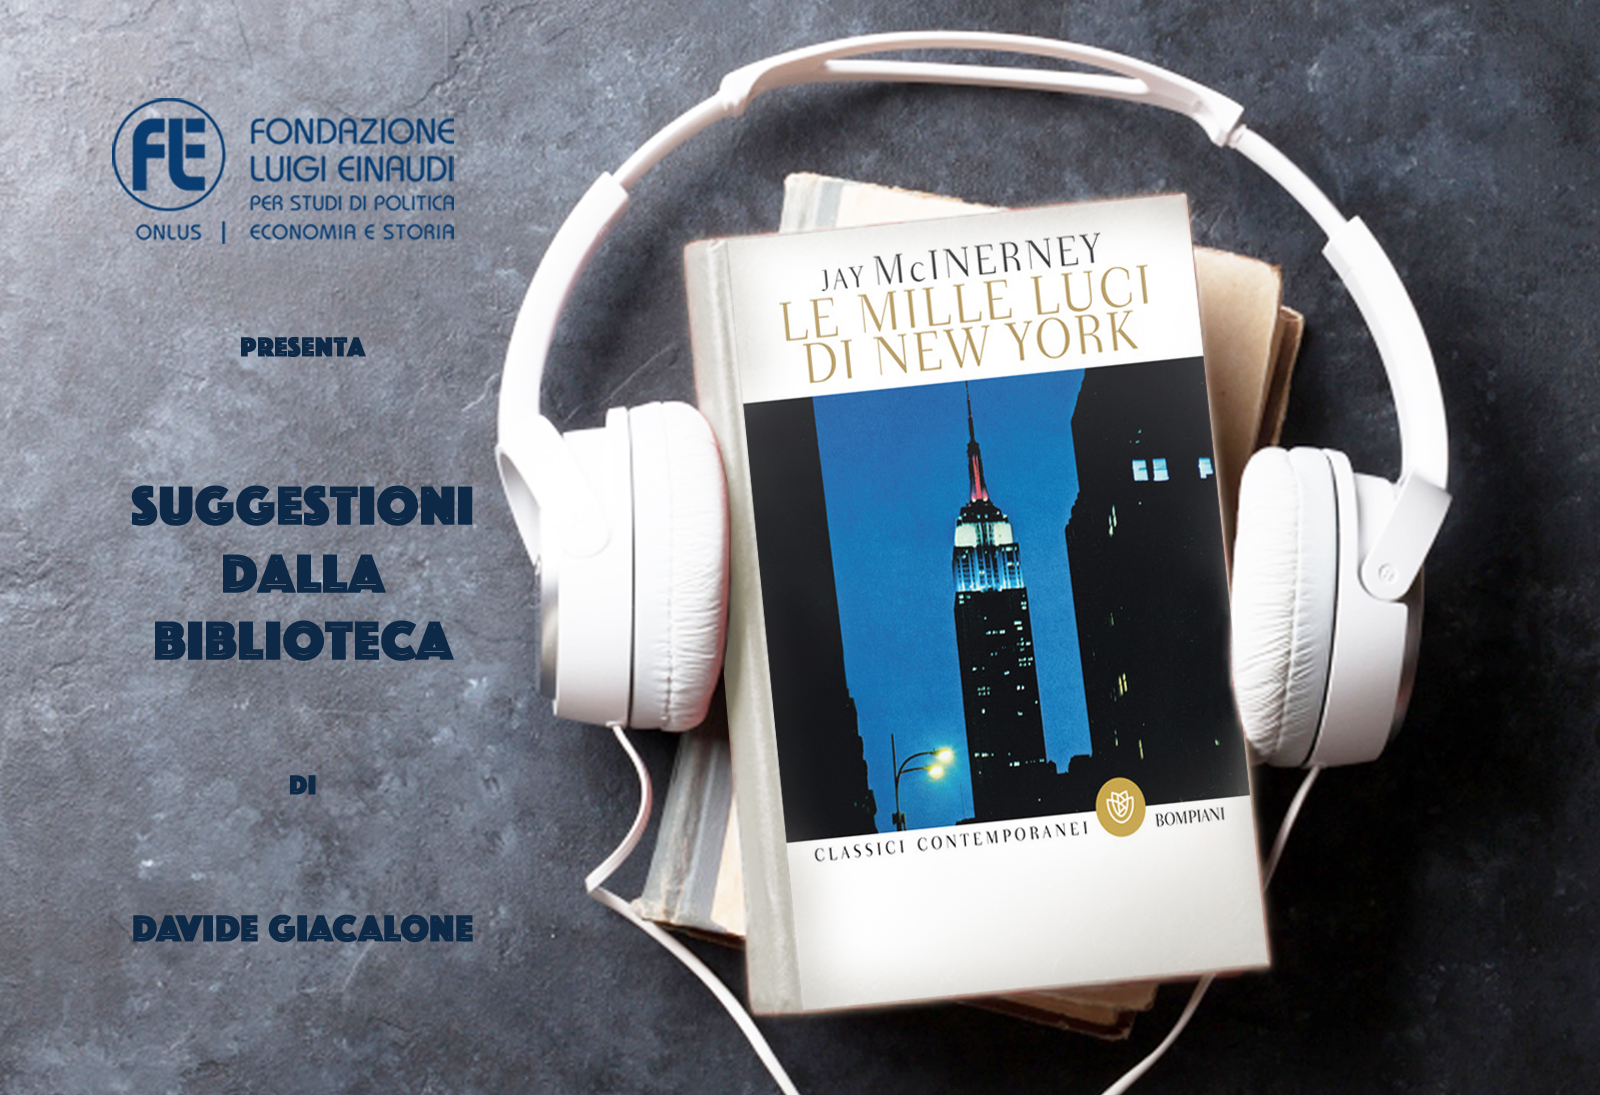 Jay McInerney – Le mille luci di New York